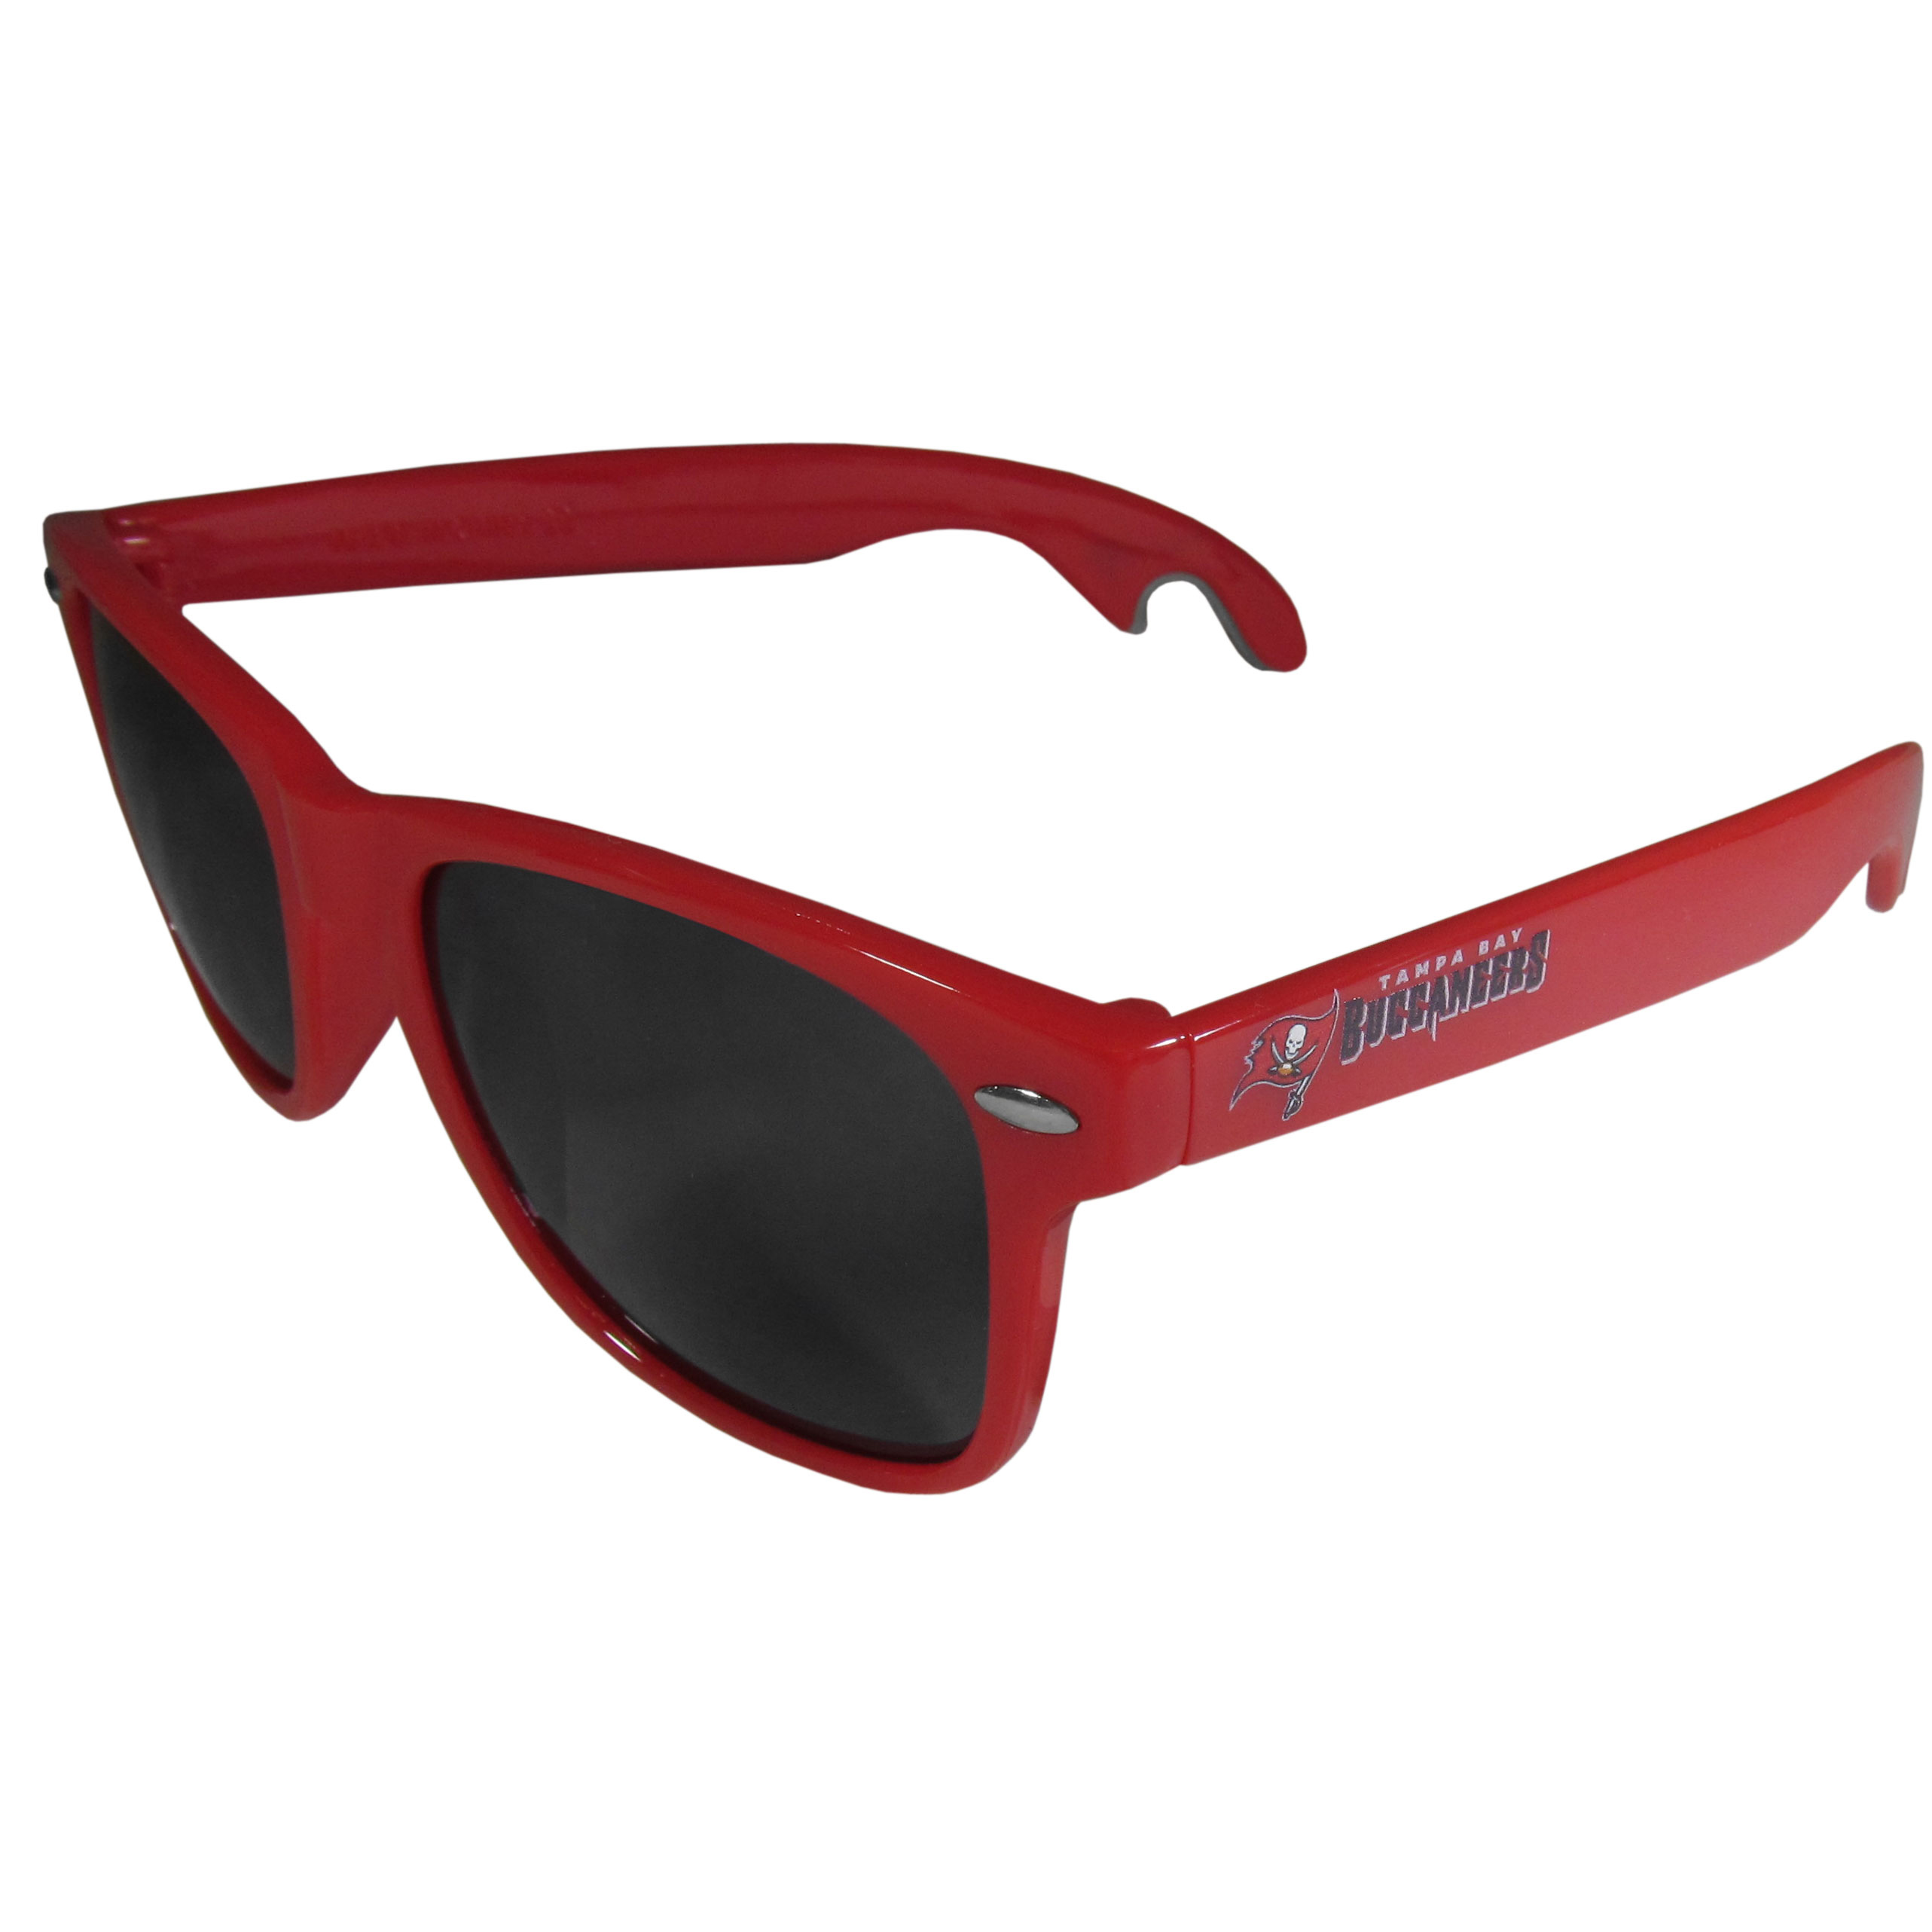 Tampa Bay Buccaneers Beachfarer Bottle Opener Sunglasses, Red - Seriously, these sunglasses open bottles! Keep the party going with these amazing Tampa Bay Buccaneers bottle opener sunglasses. The stylish retro frames feature team designs on the arms and functional bottle openers on the end of the arms. Whether you are at the beach or having a backyard BBQ on game day, these shades will keep your eyes protected with 100% UVA/UVB protection and keep you hydrated with the handy bottle opener arms.